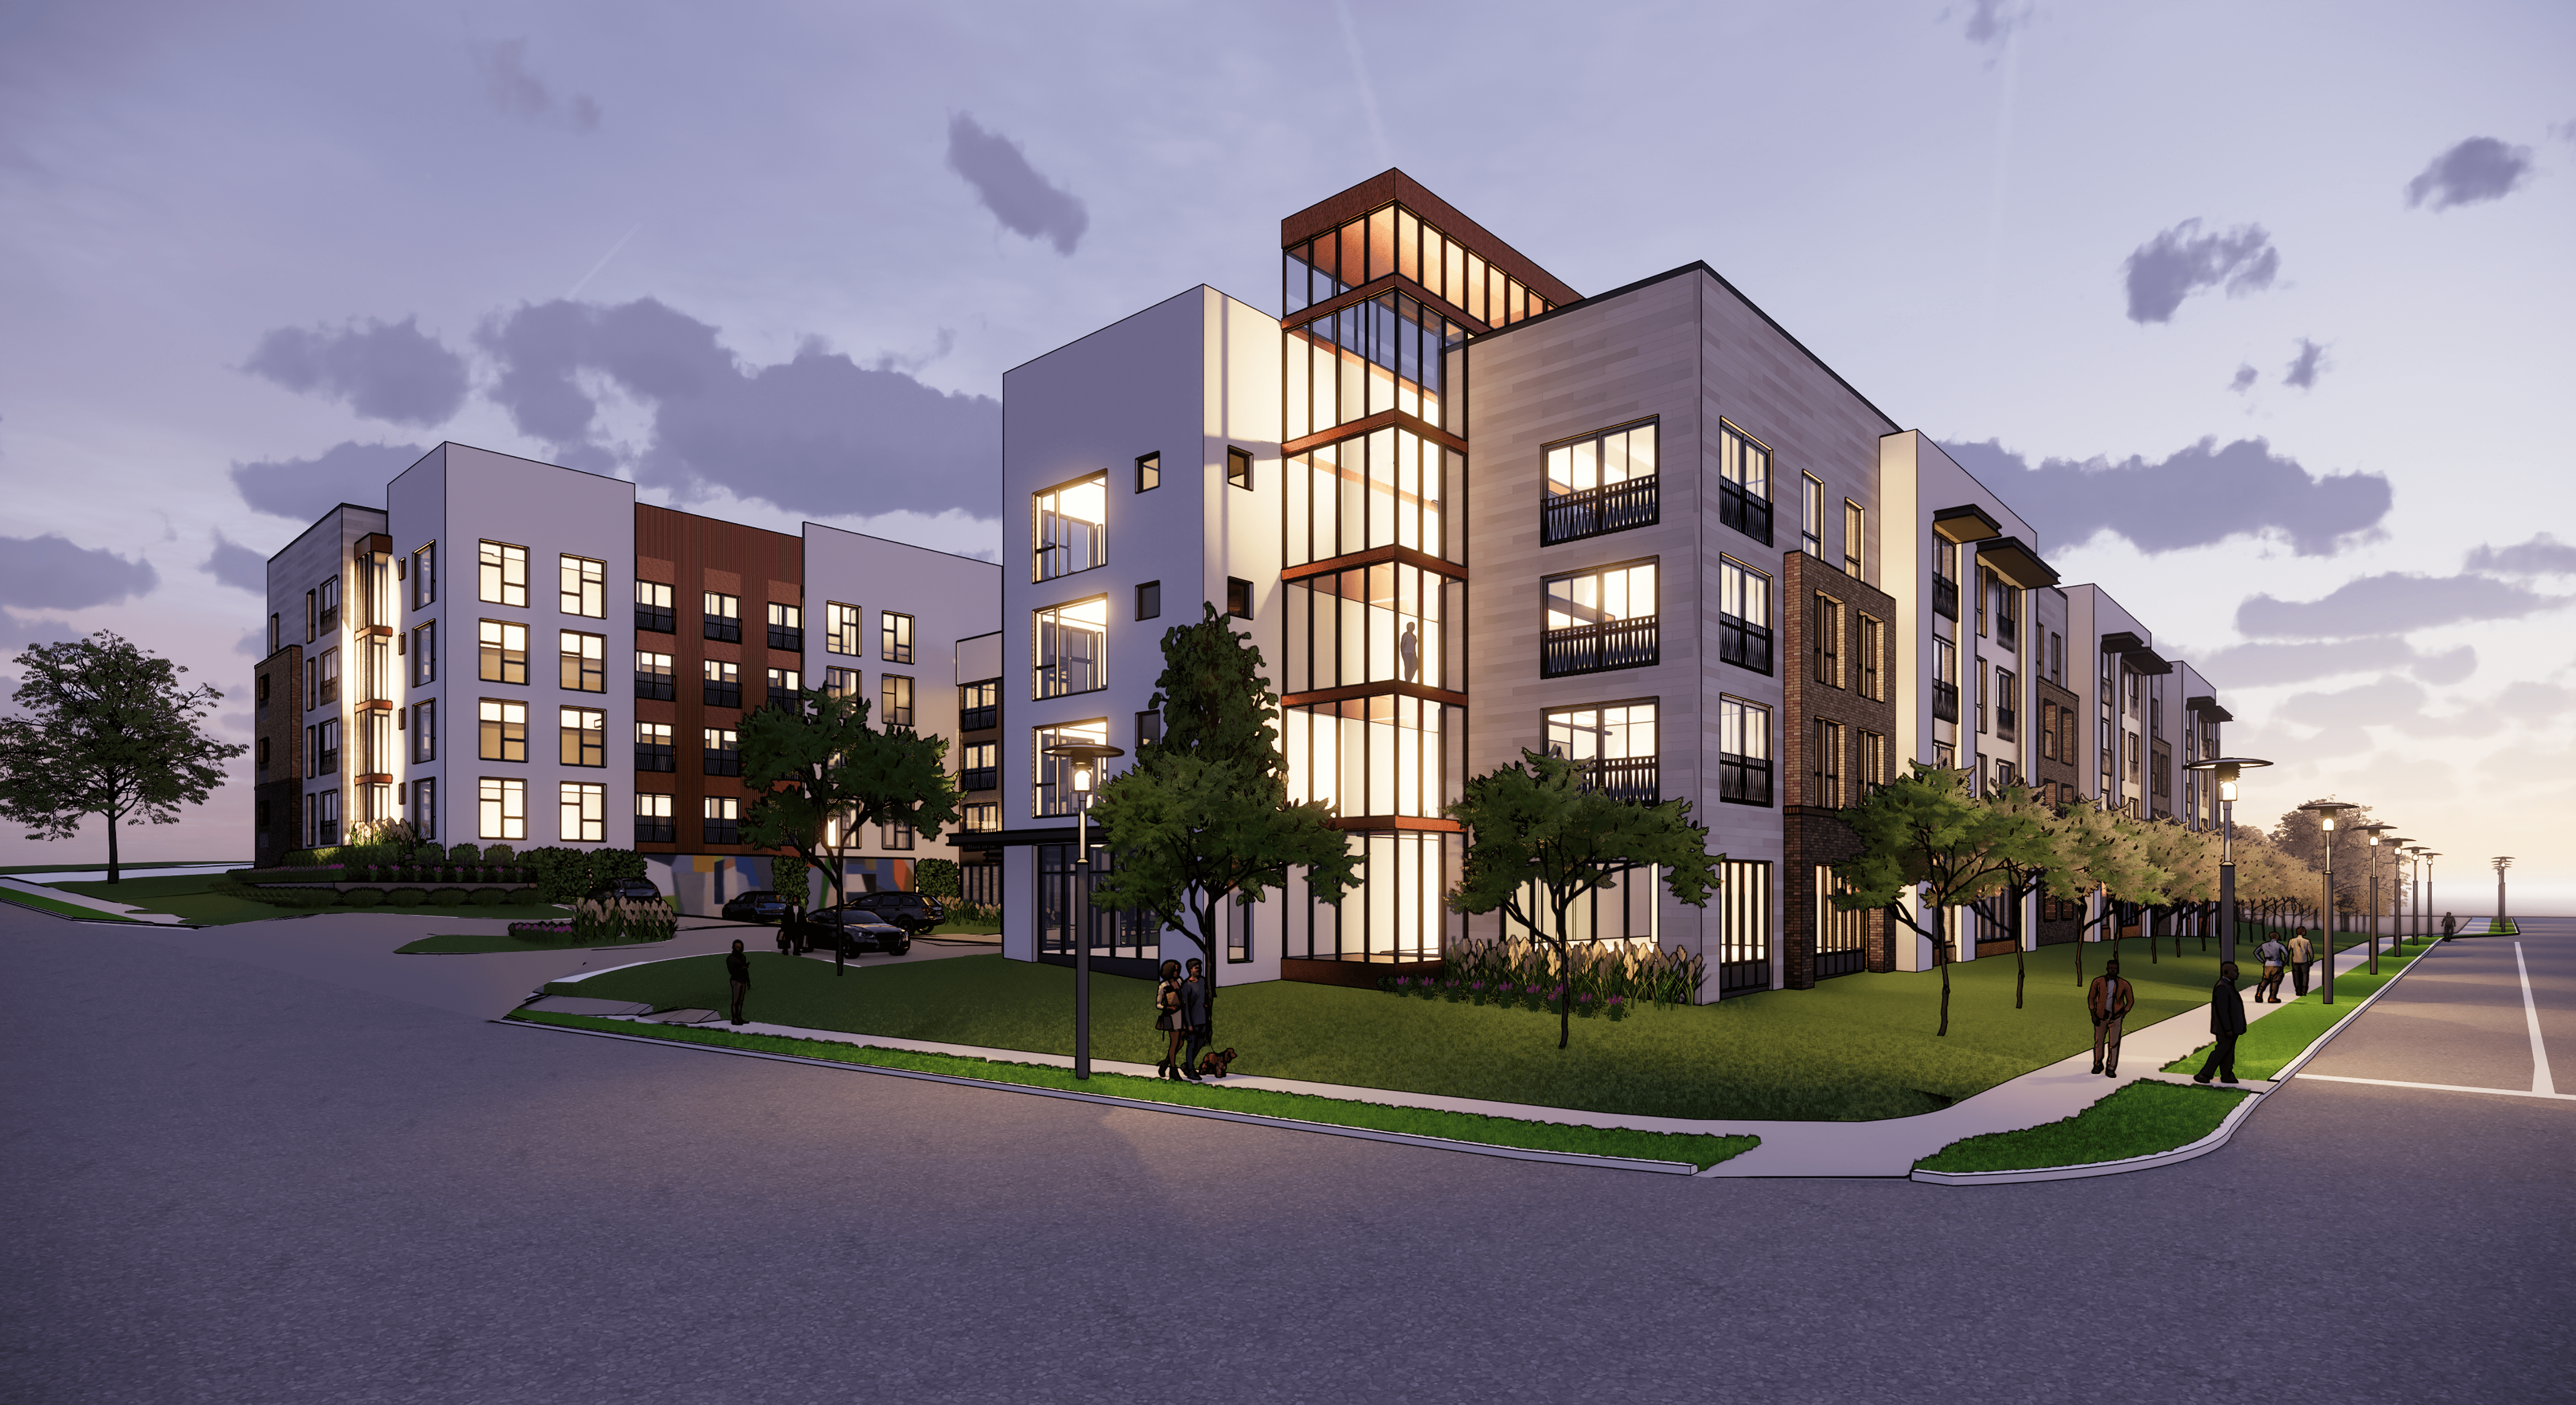 FWHS Releases Architectural Renderings for Cowan Place Senior Living